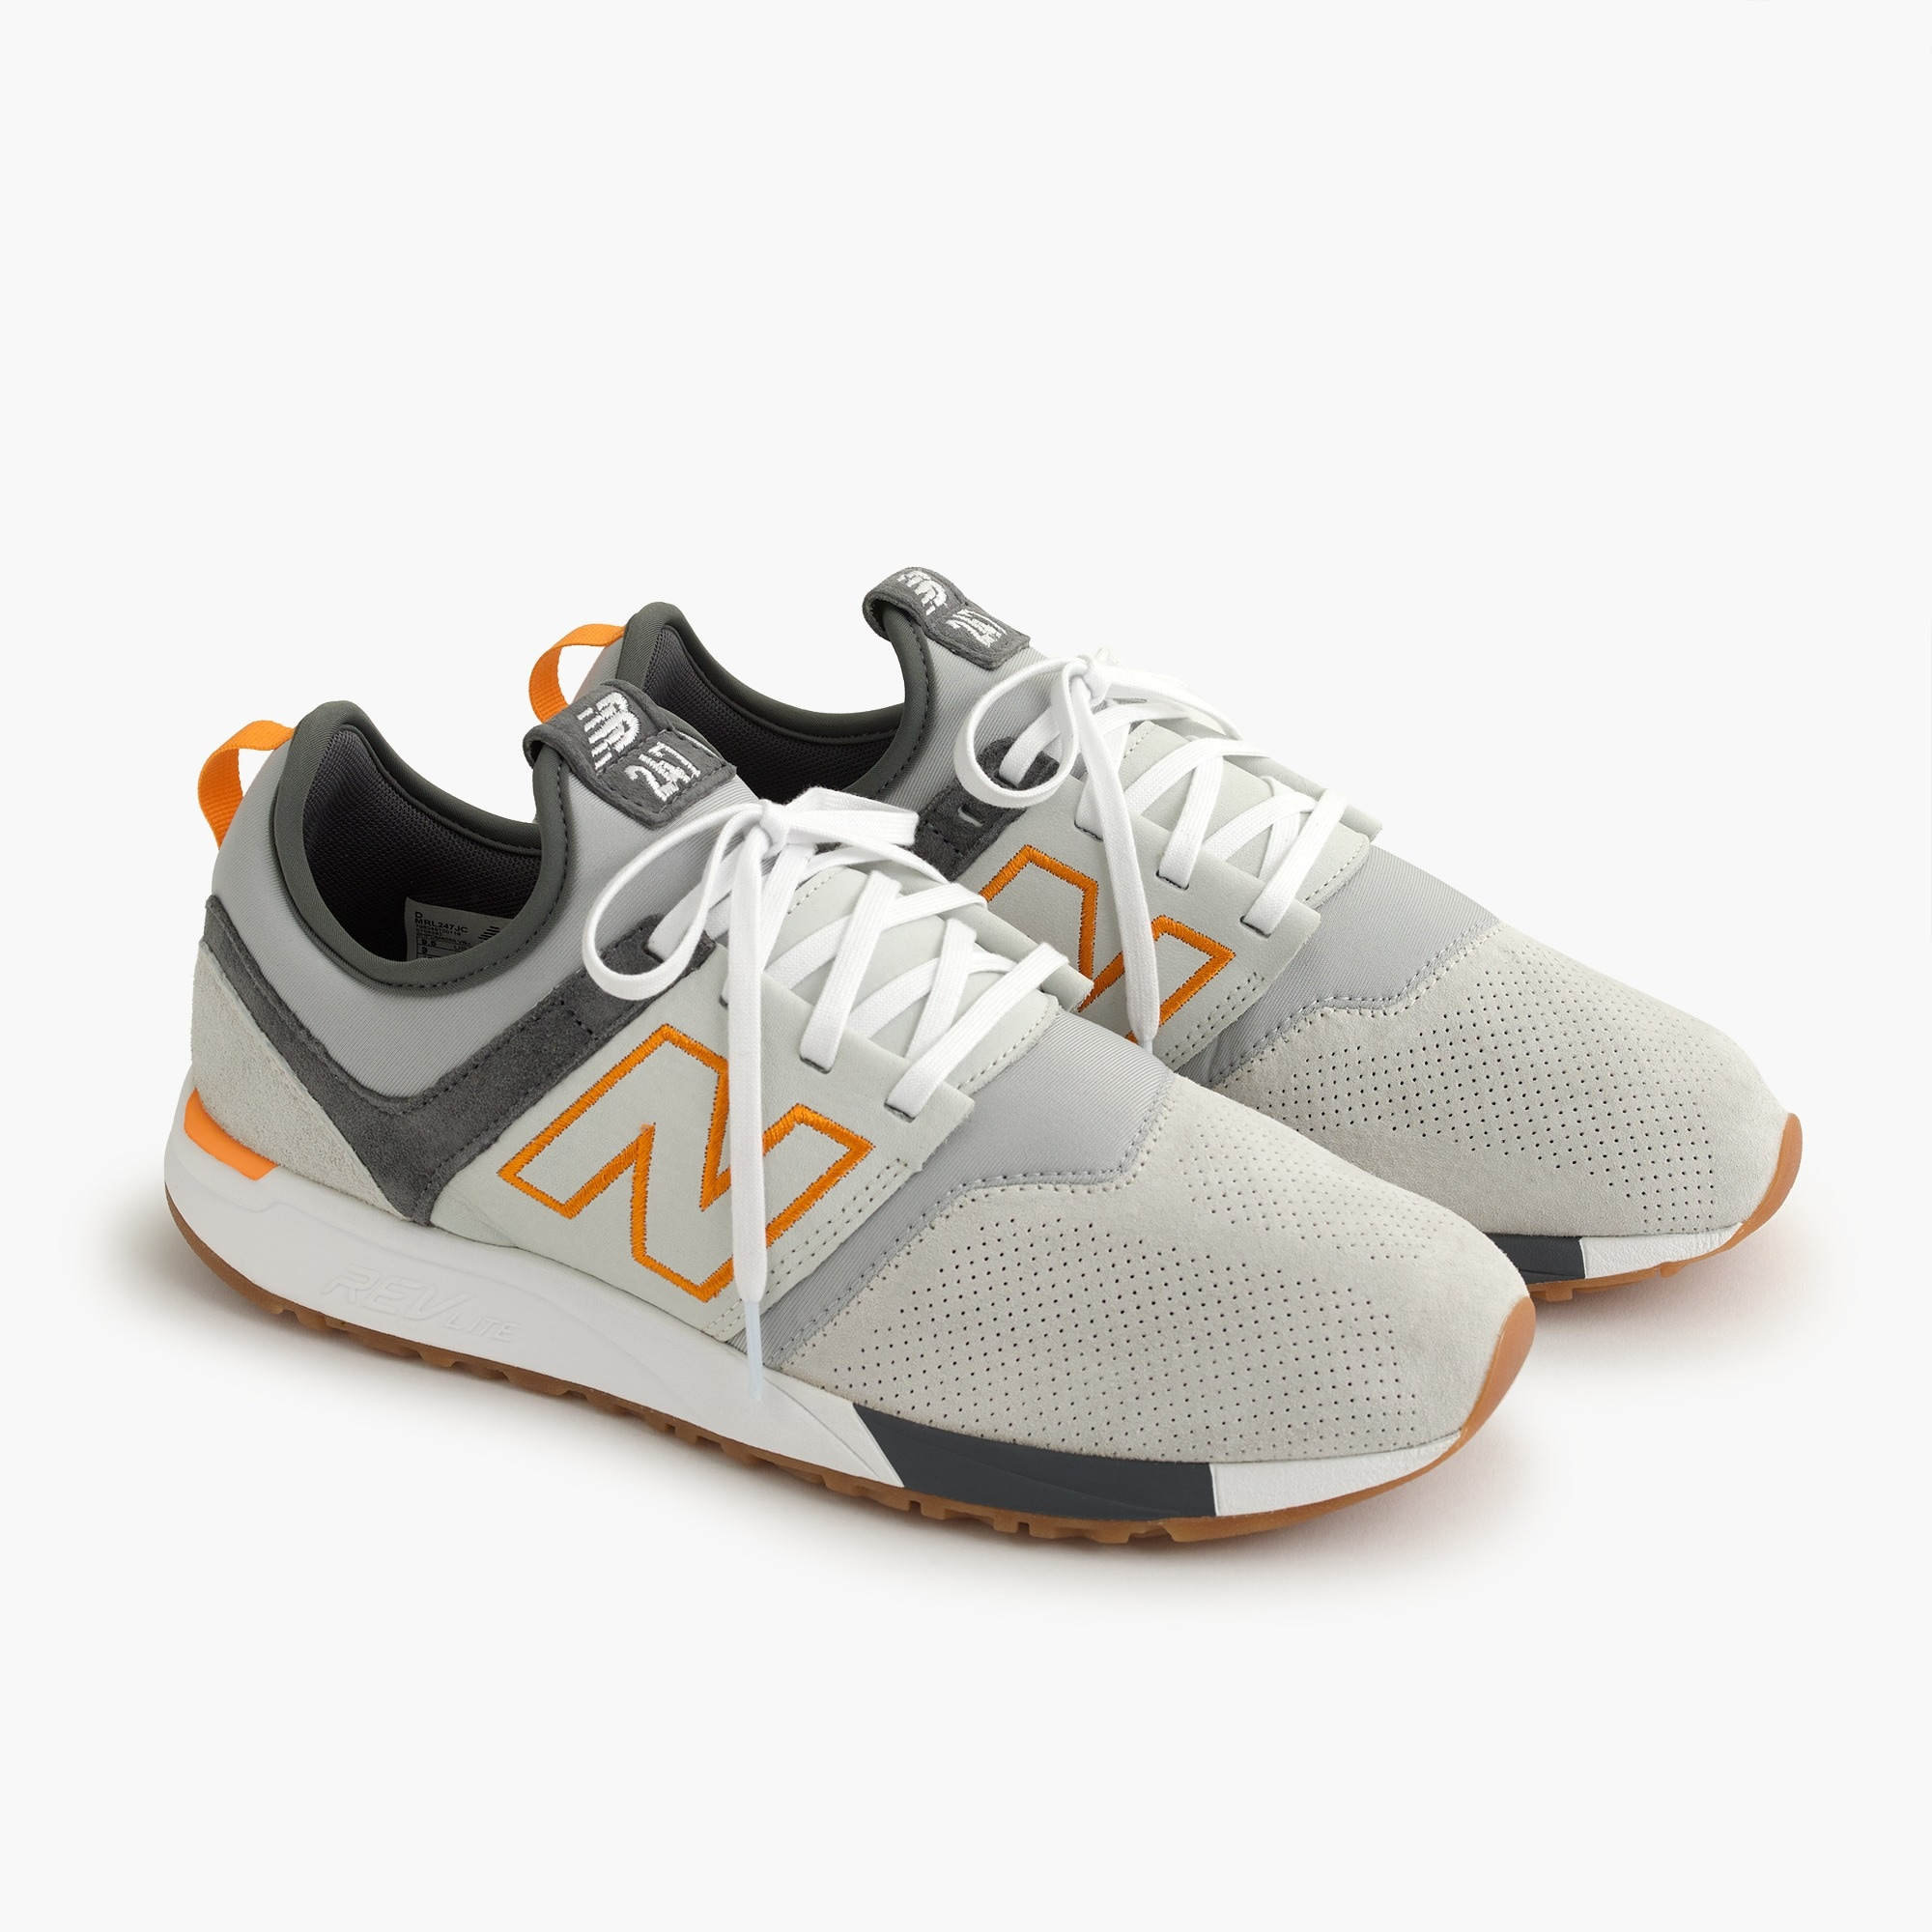 New Balance® for J.Crew 247 Luxe sneakers in suede